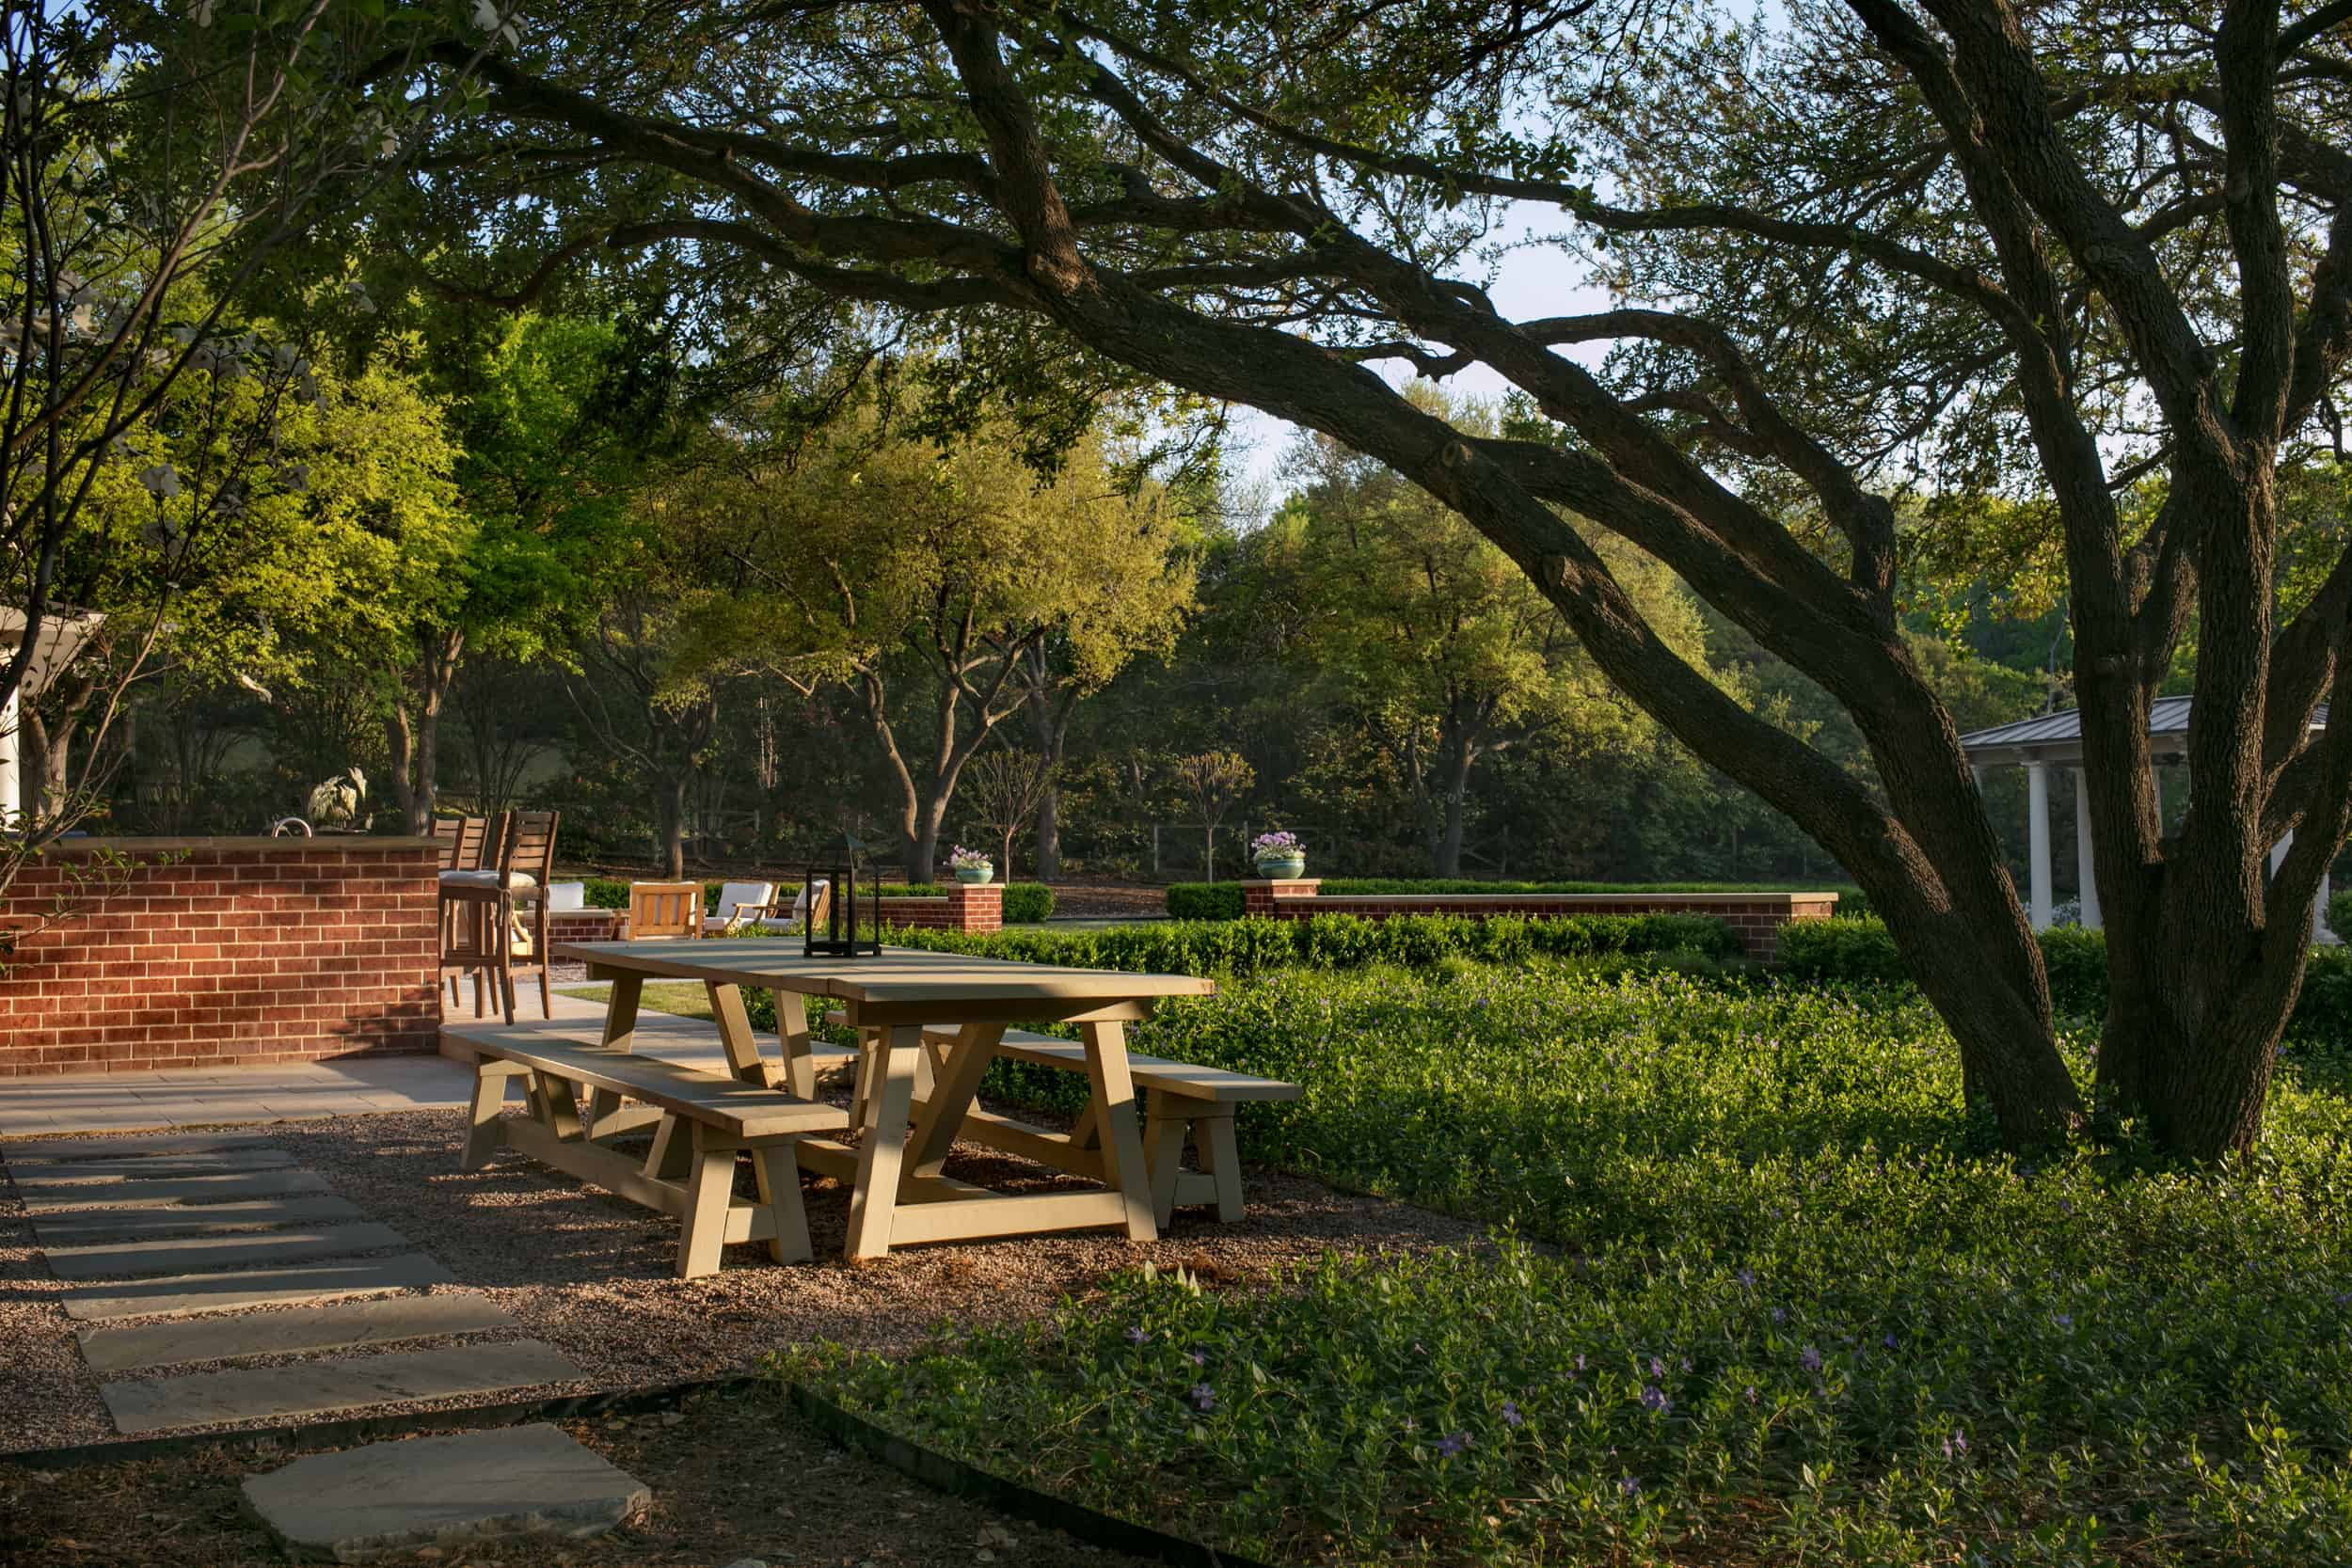 The outdoor dining space is shaded by a mature live-oak (Quercus virginiana). The teak table sits in a bed of gravel surrounding by periwinkle vines (vinca minor).